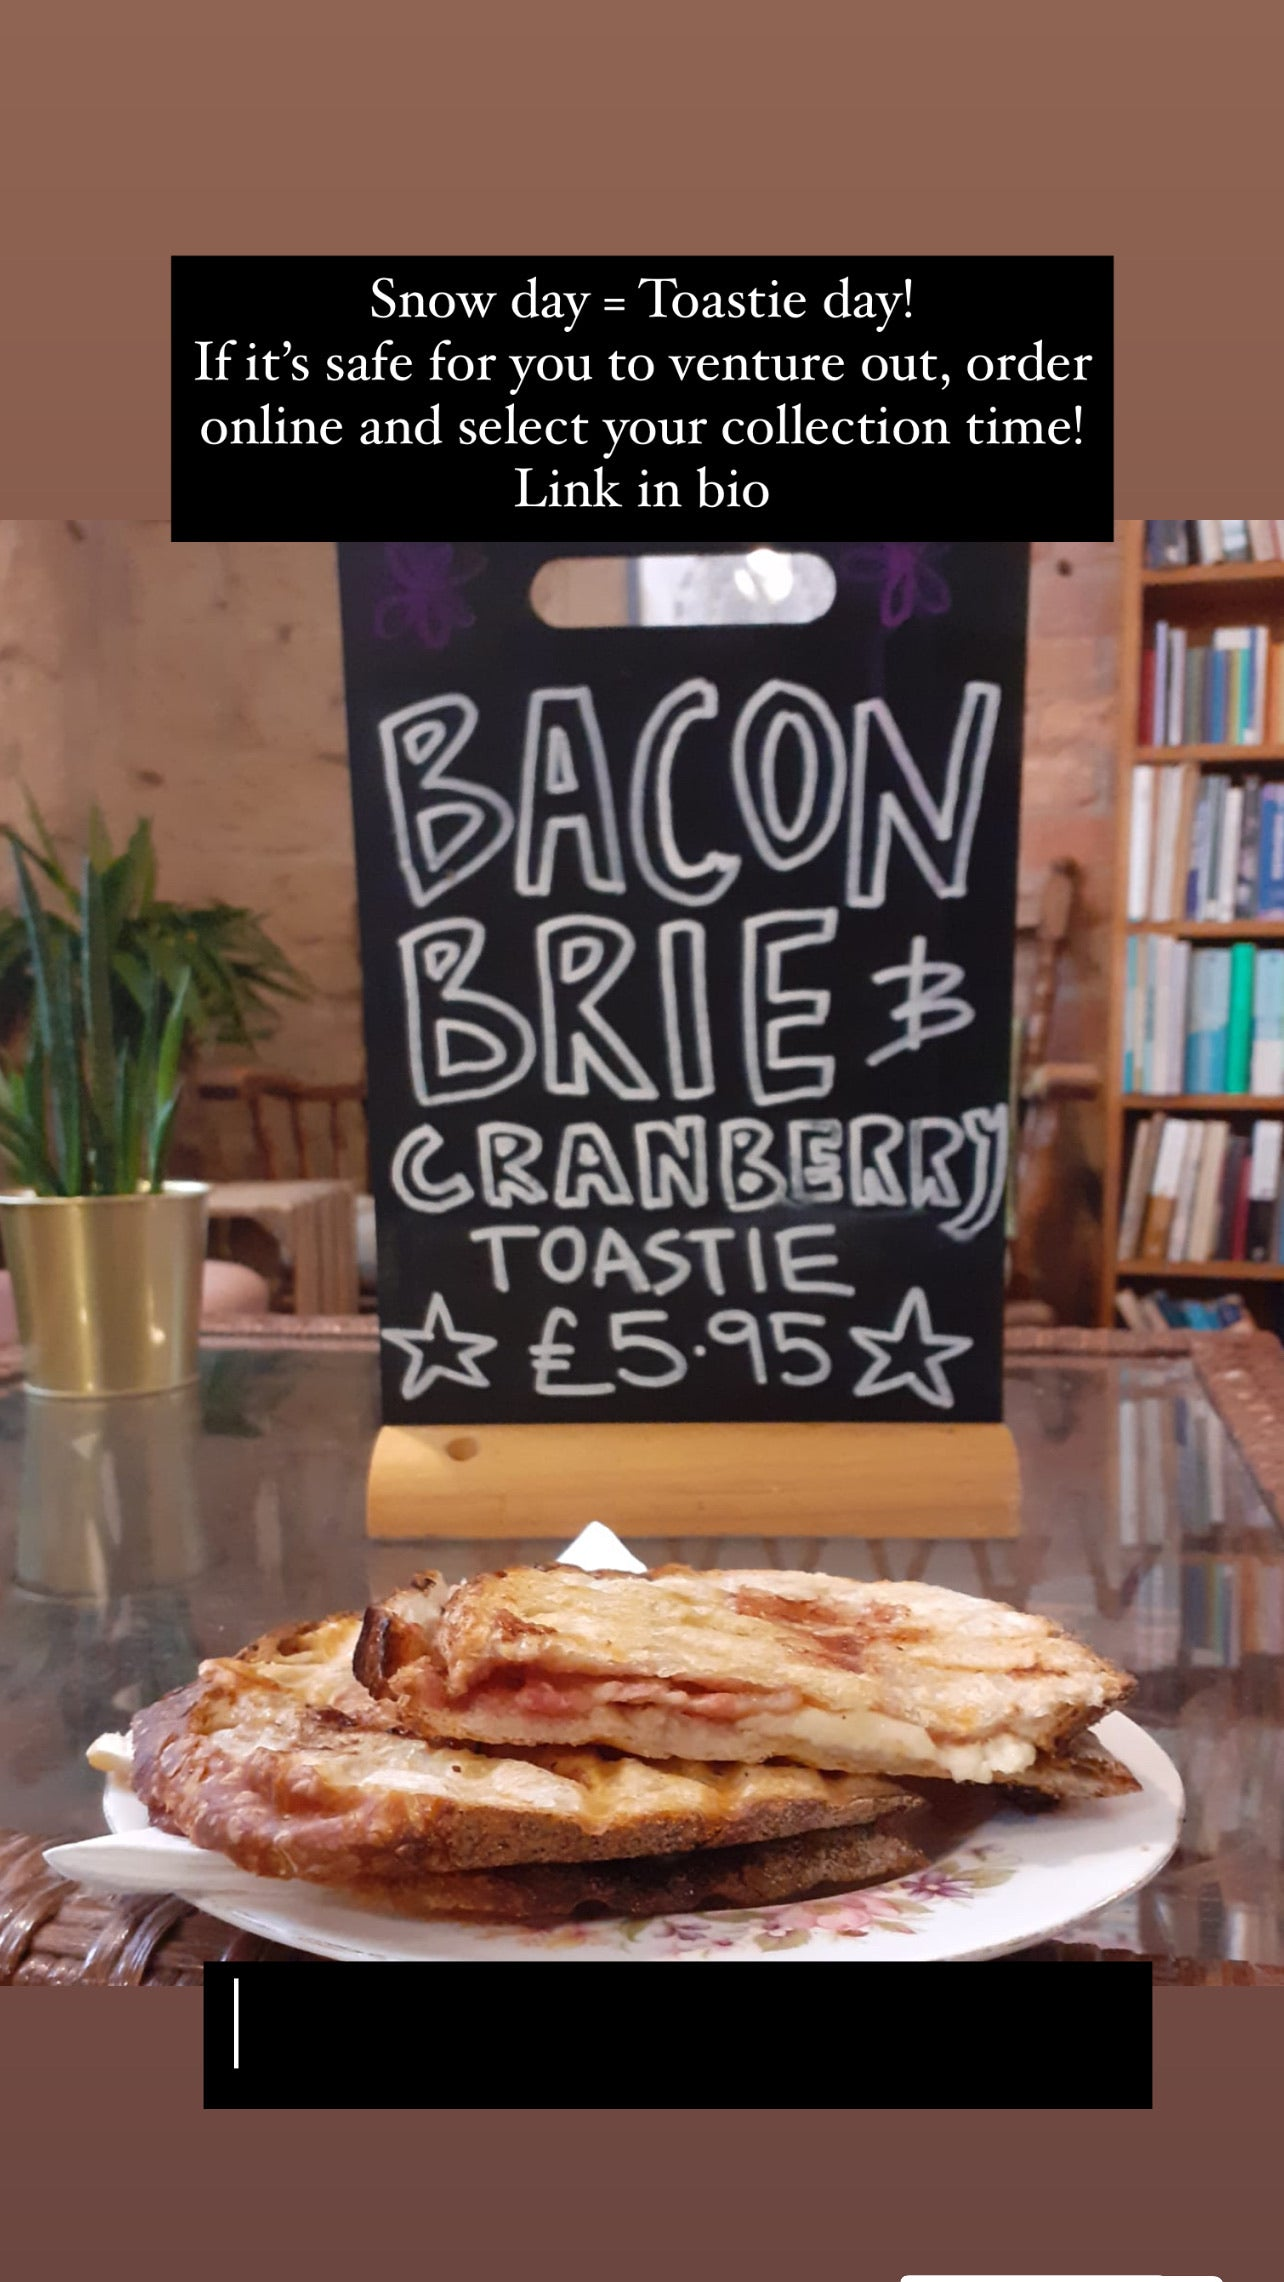 Bacon, Brie & Cranberry Toastie